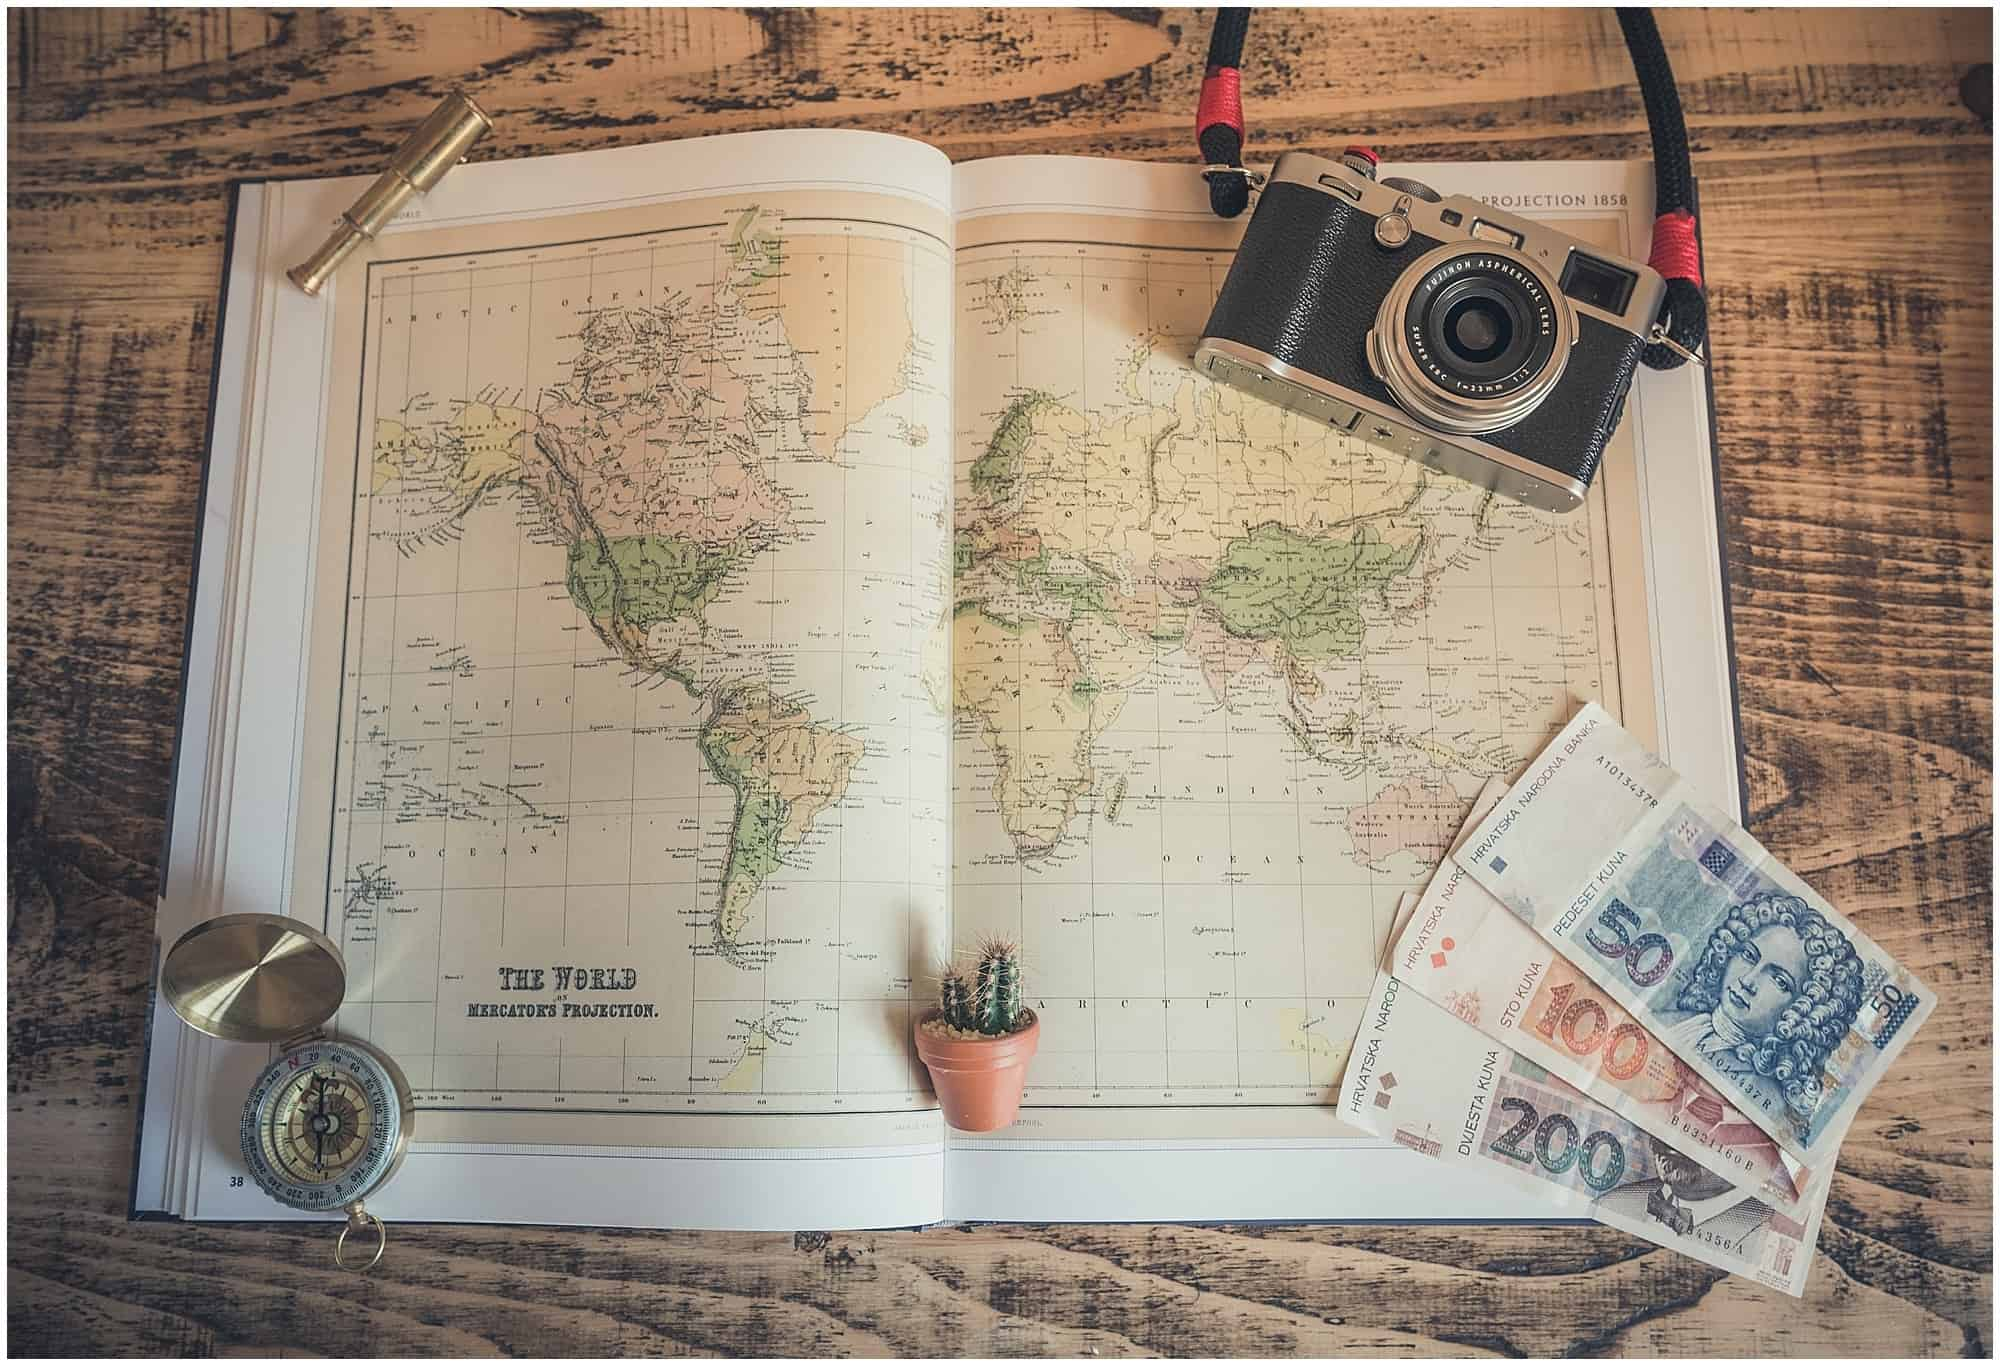 Travel packing tips and hacks